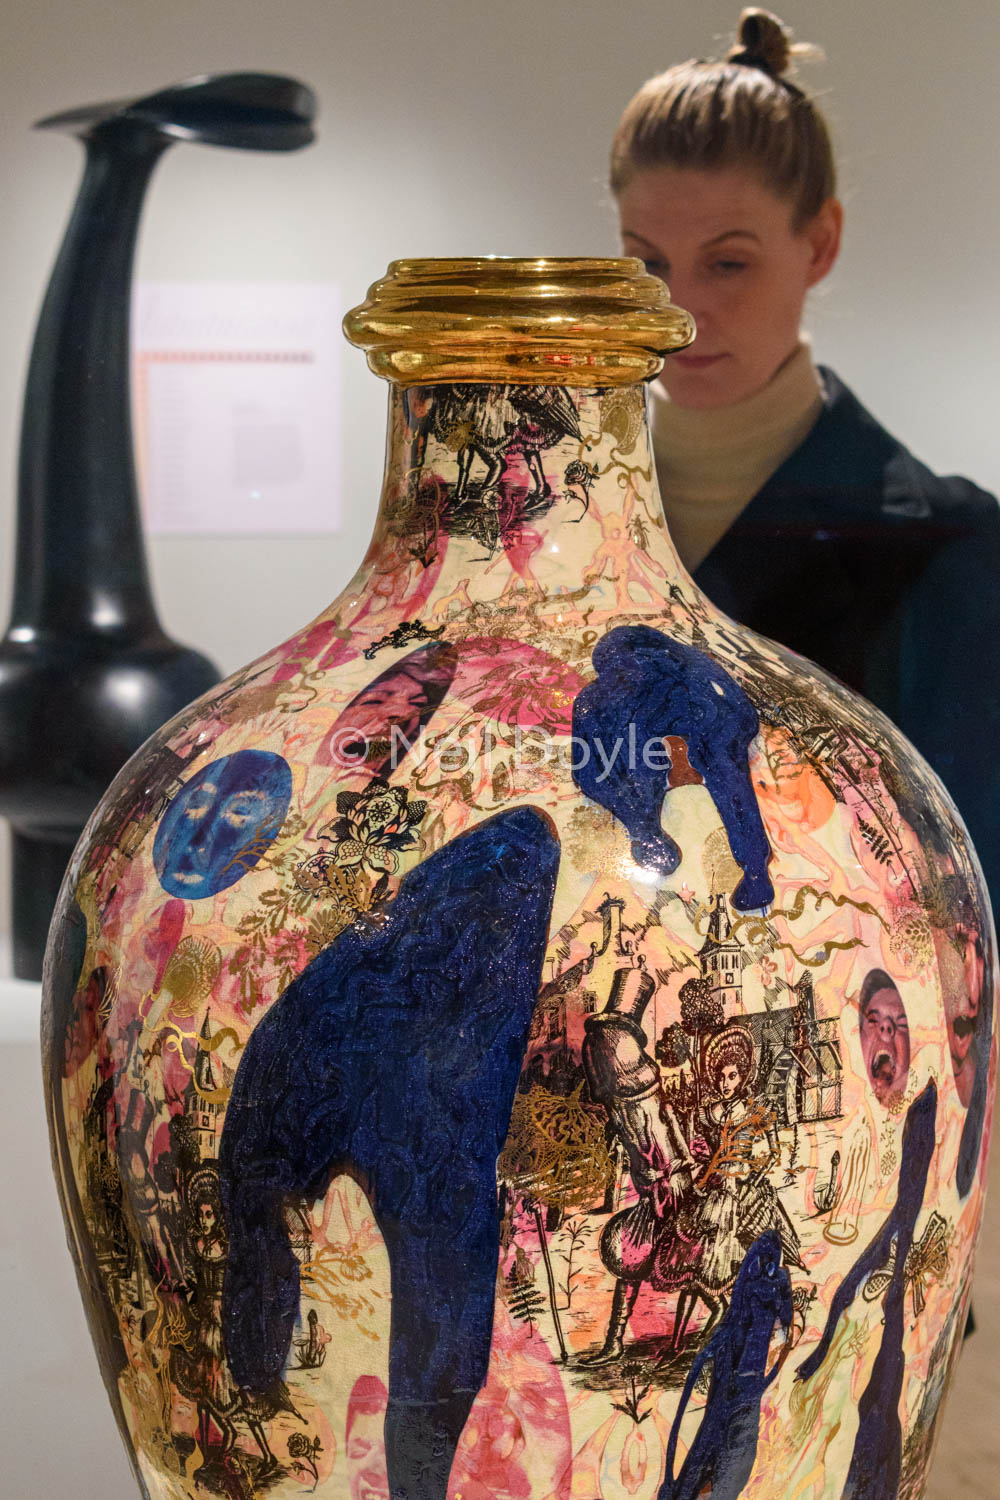 Shades of Grayson Perry